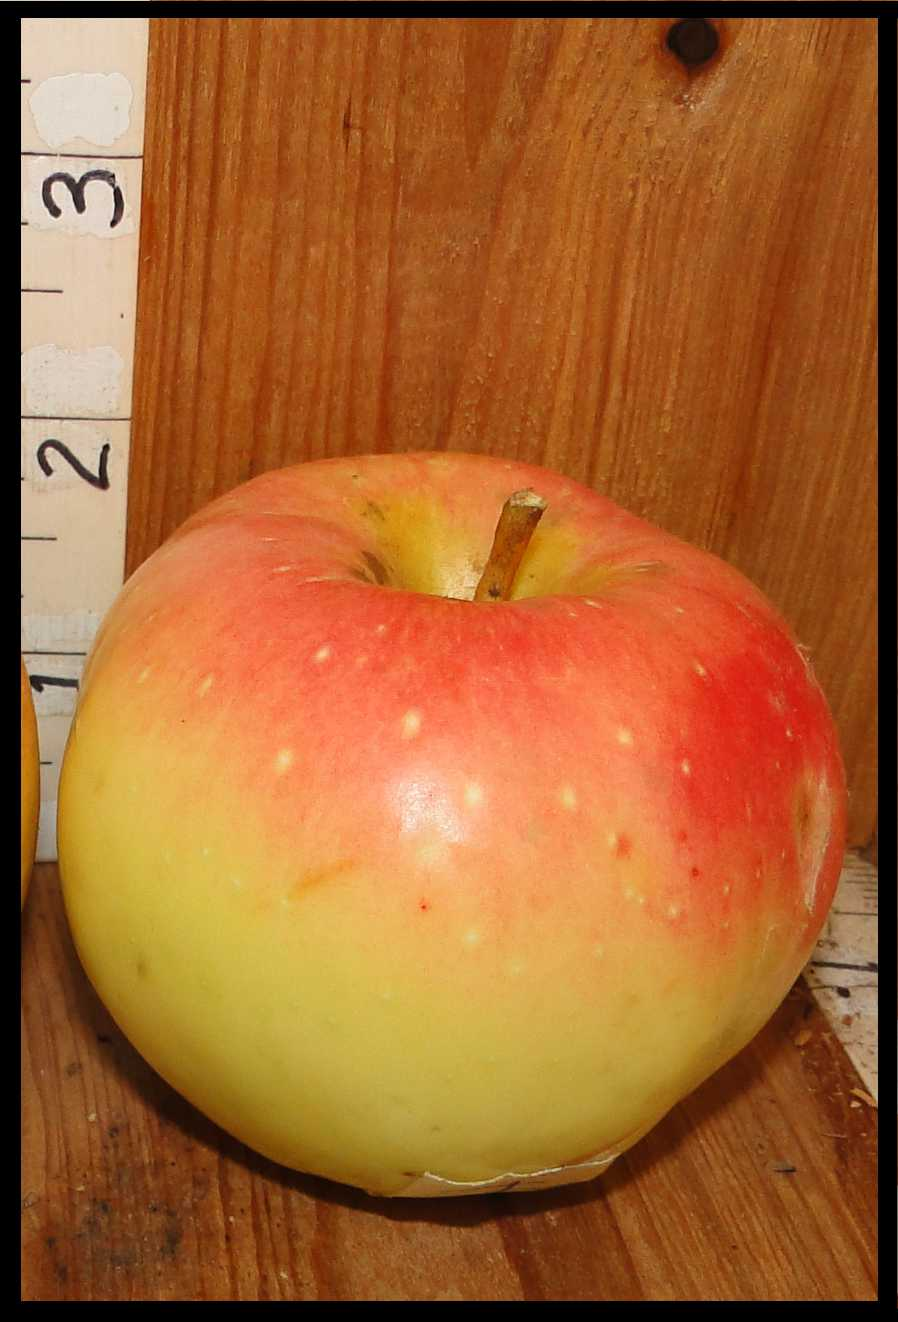 yellow apple with a pink blush on the top half